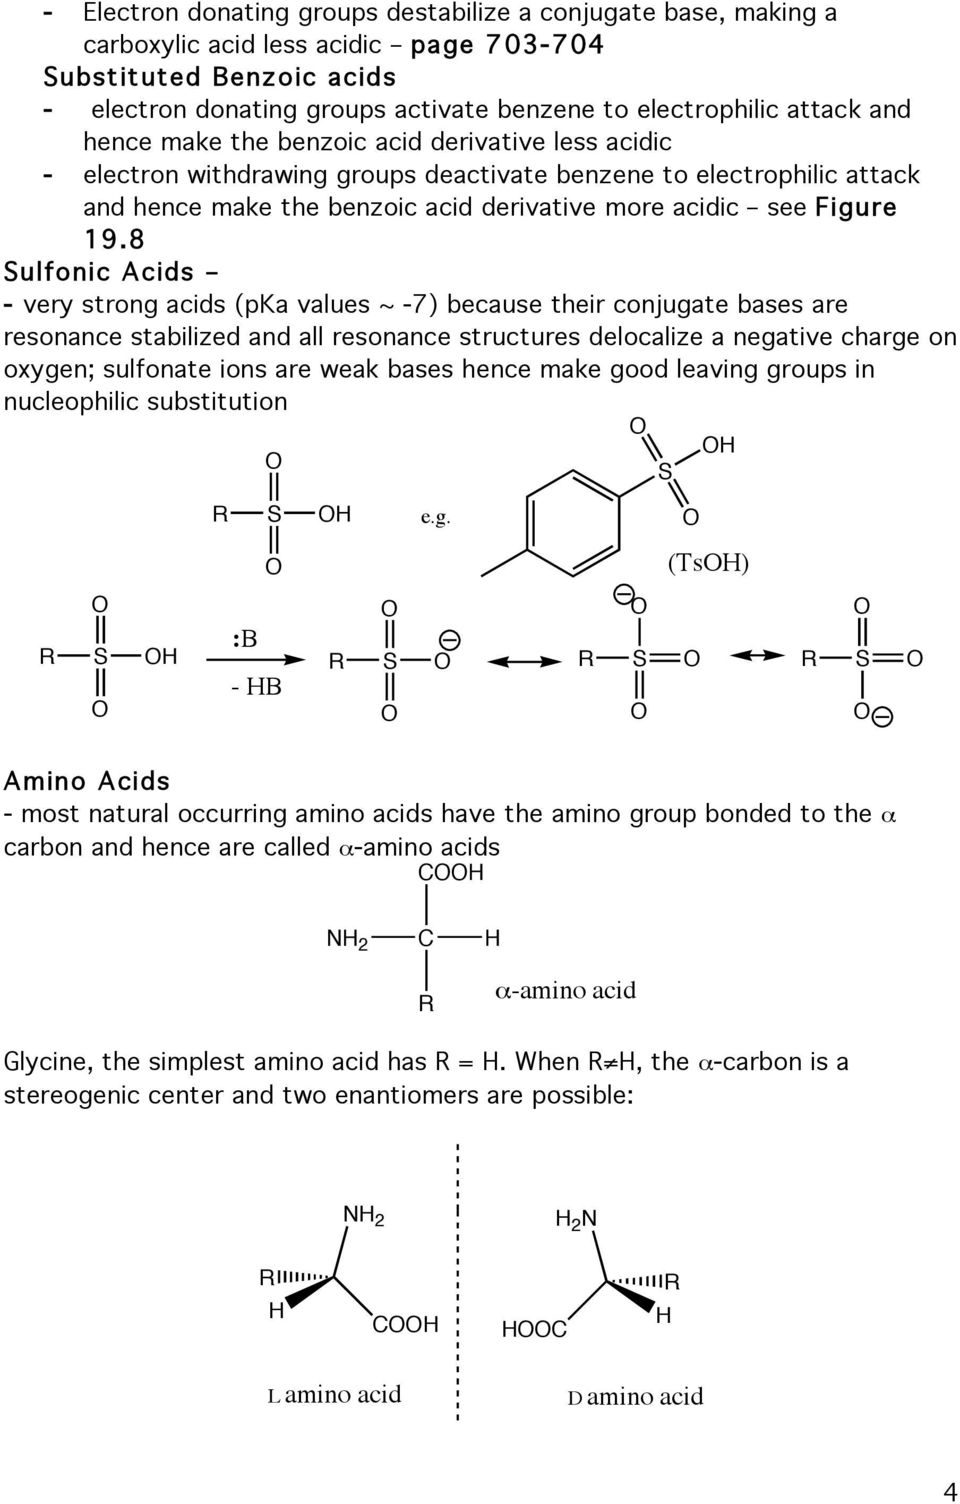 8 ulfonic Acids - very strong acids (pka values ~ -7) because their conjugate bases are resonance stabilized and all resonance structures delocalize a negative charge on oxygen; sulfonate ions are